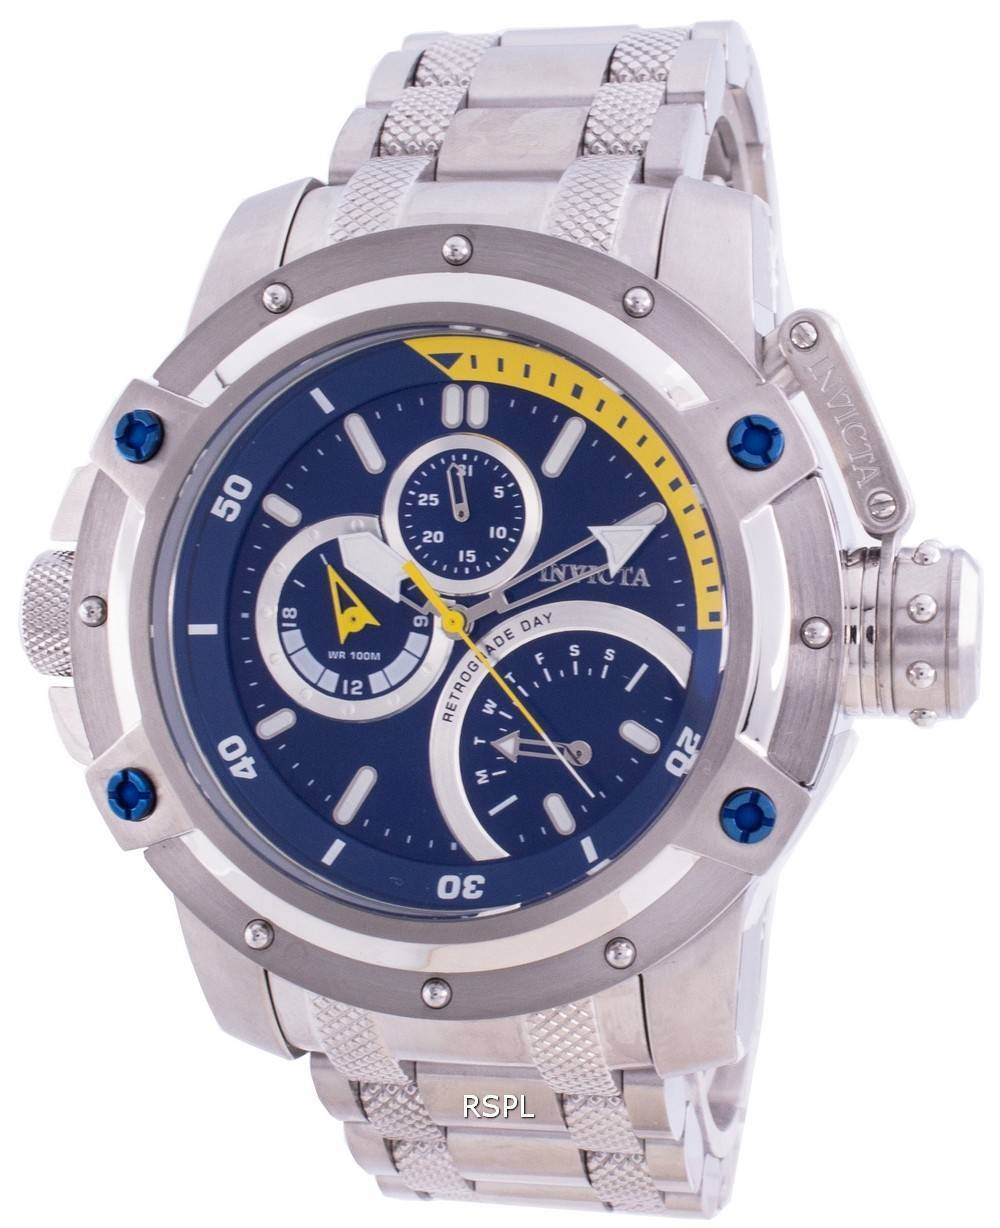 Invicta Coalition Forces 30379 Quarz Chronograph Herrenuhr